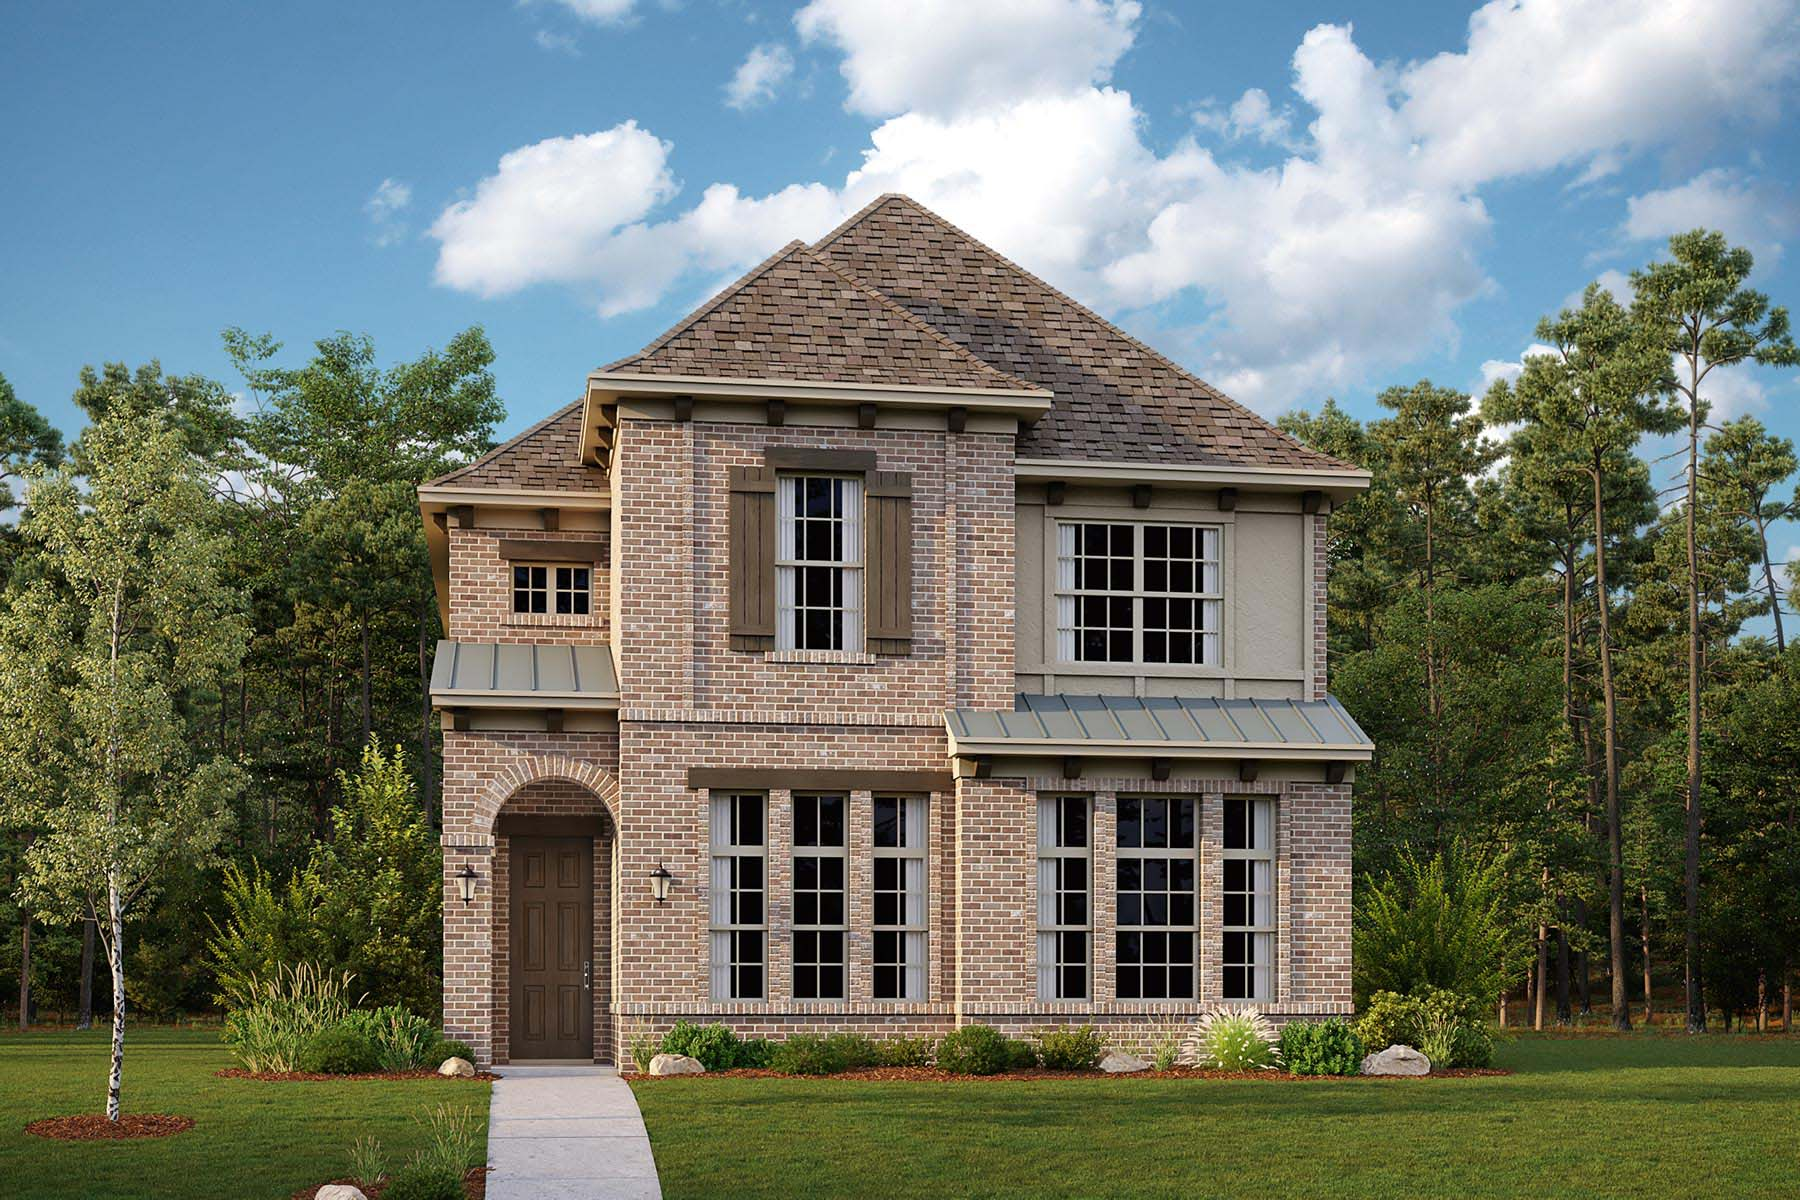 Woodland Plan DAL_KensingtonPlace_Woodland_ElevationA_1800x1200 at Kensington Place in Farmers Branch Texas by Mattamy Homes